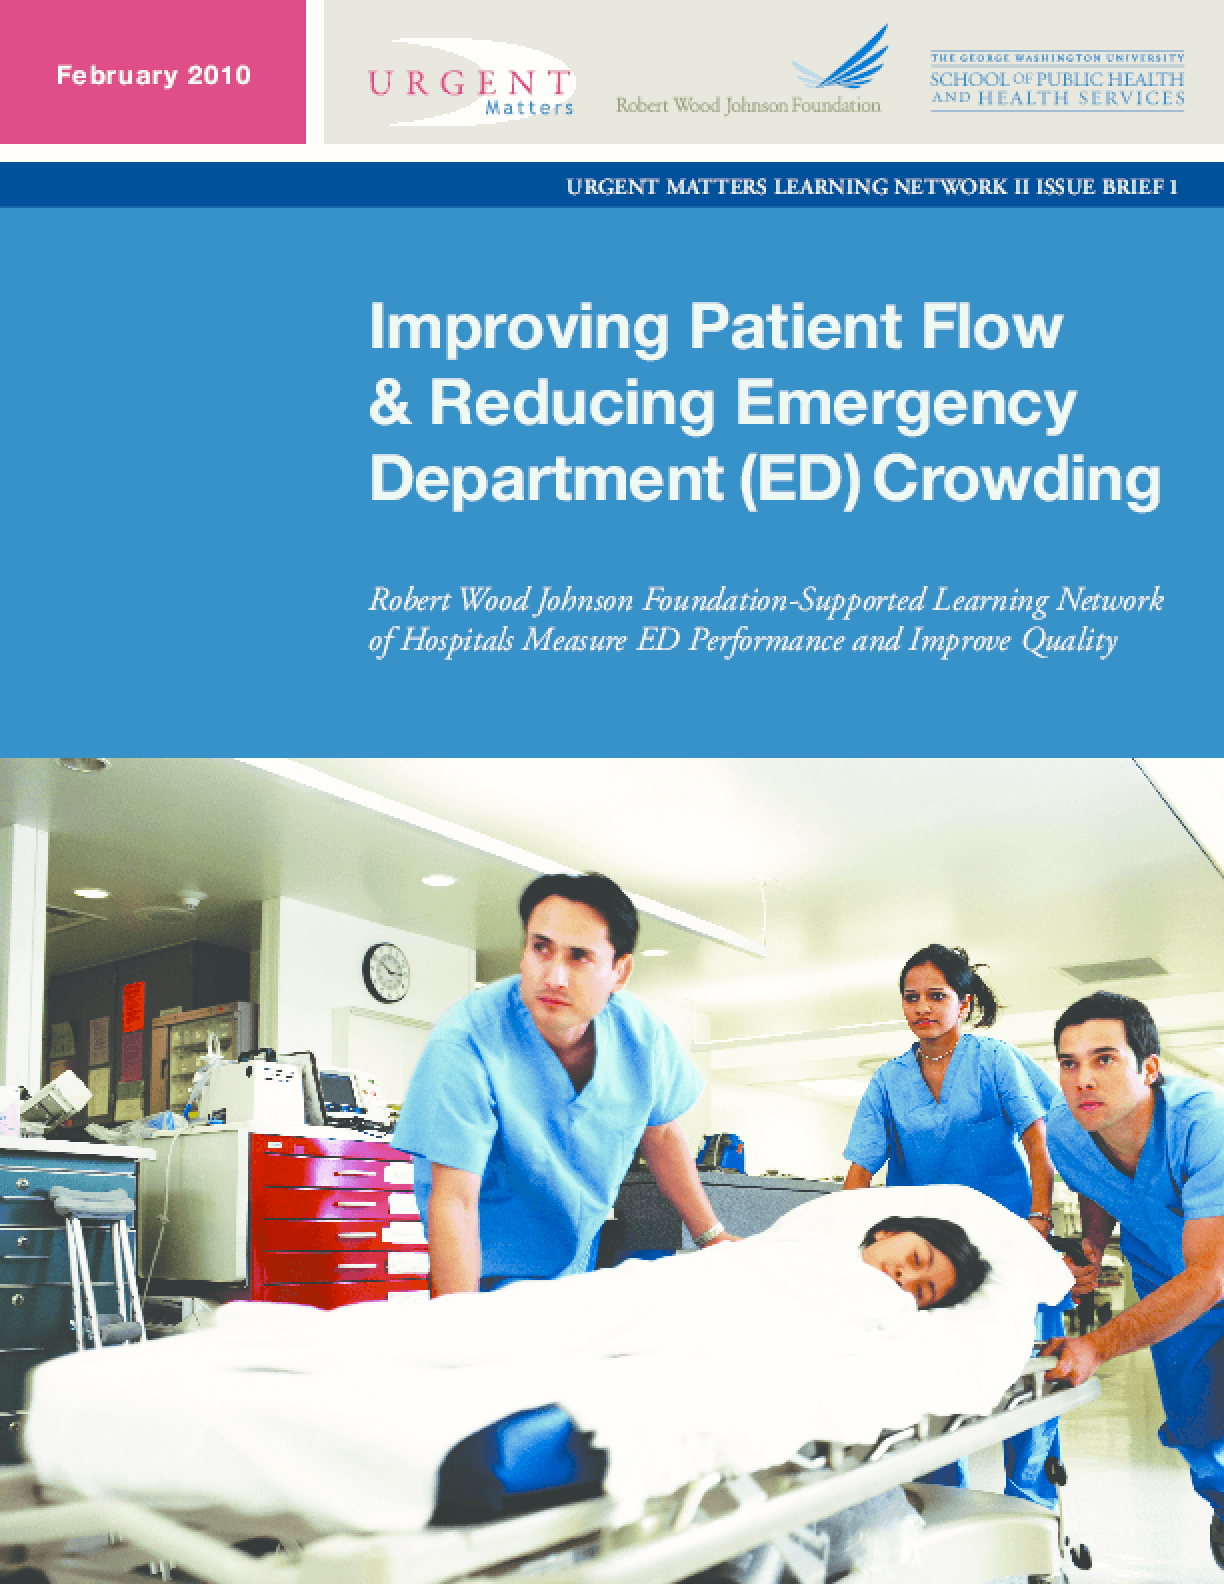 Improving Patient Flow & Reducing Emergency Department (ED) Crowding